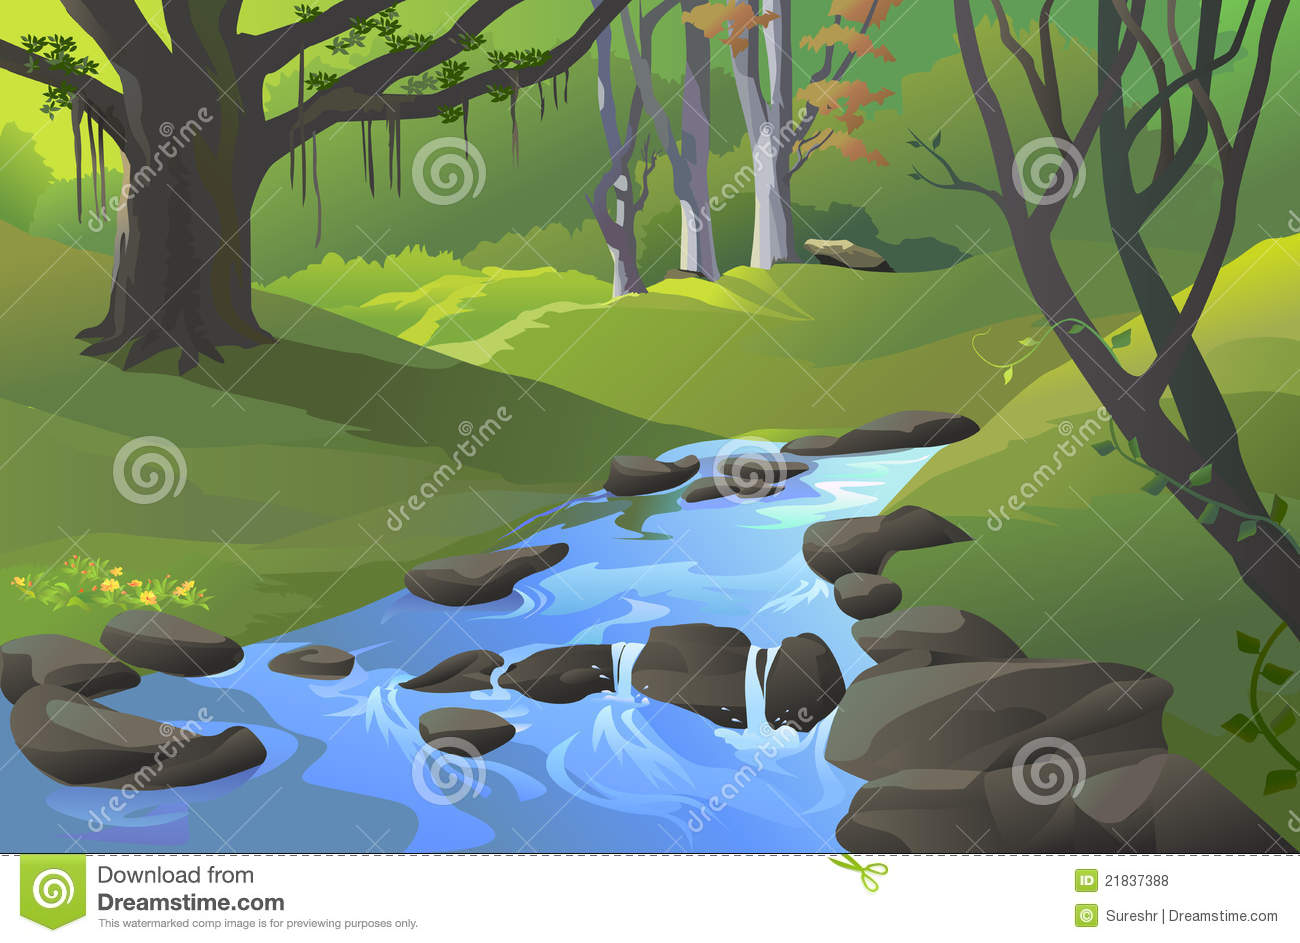 Sream clipart mountain scenery Free Stream Clipart Clipart Images